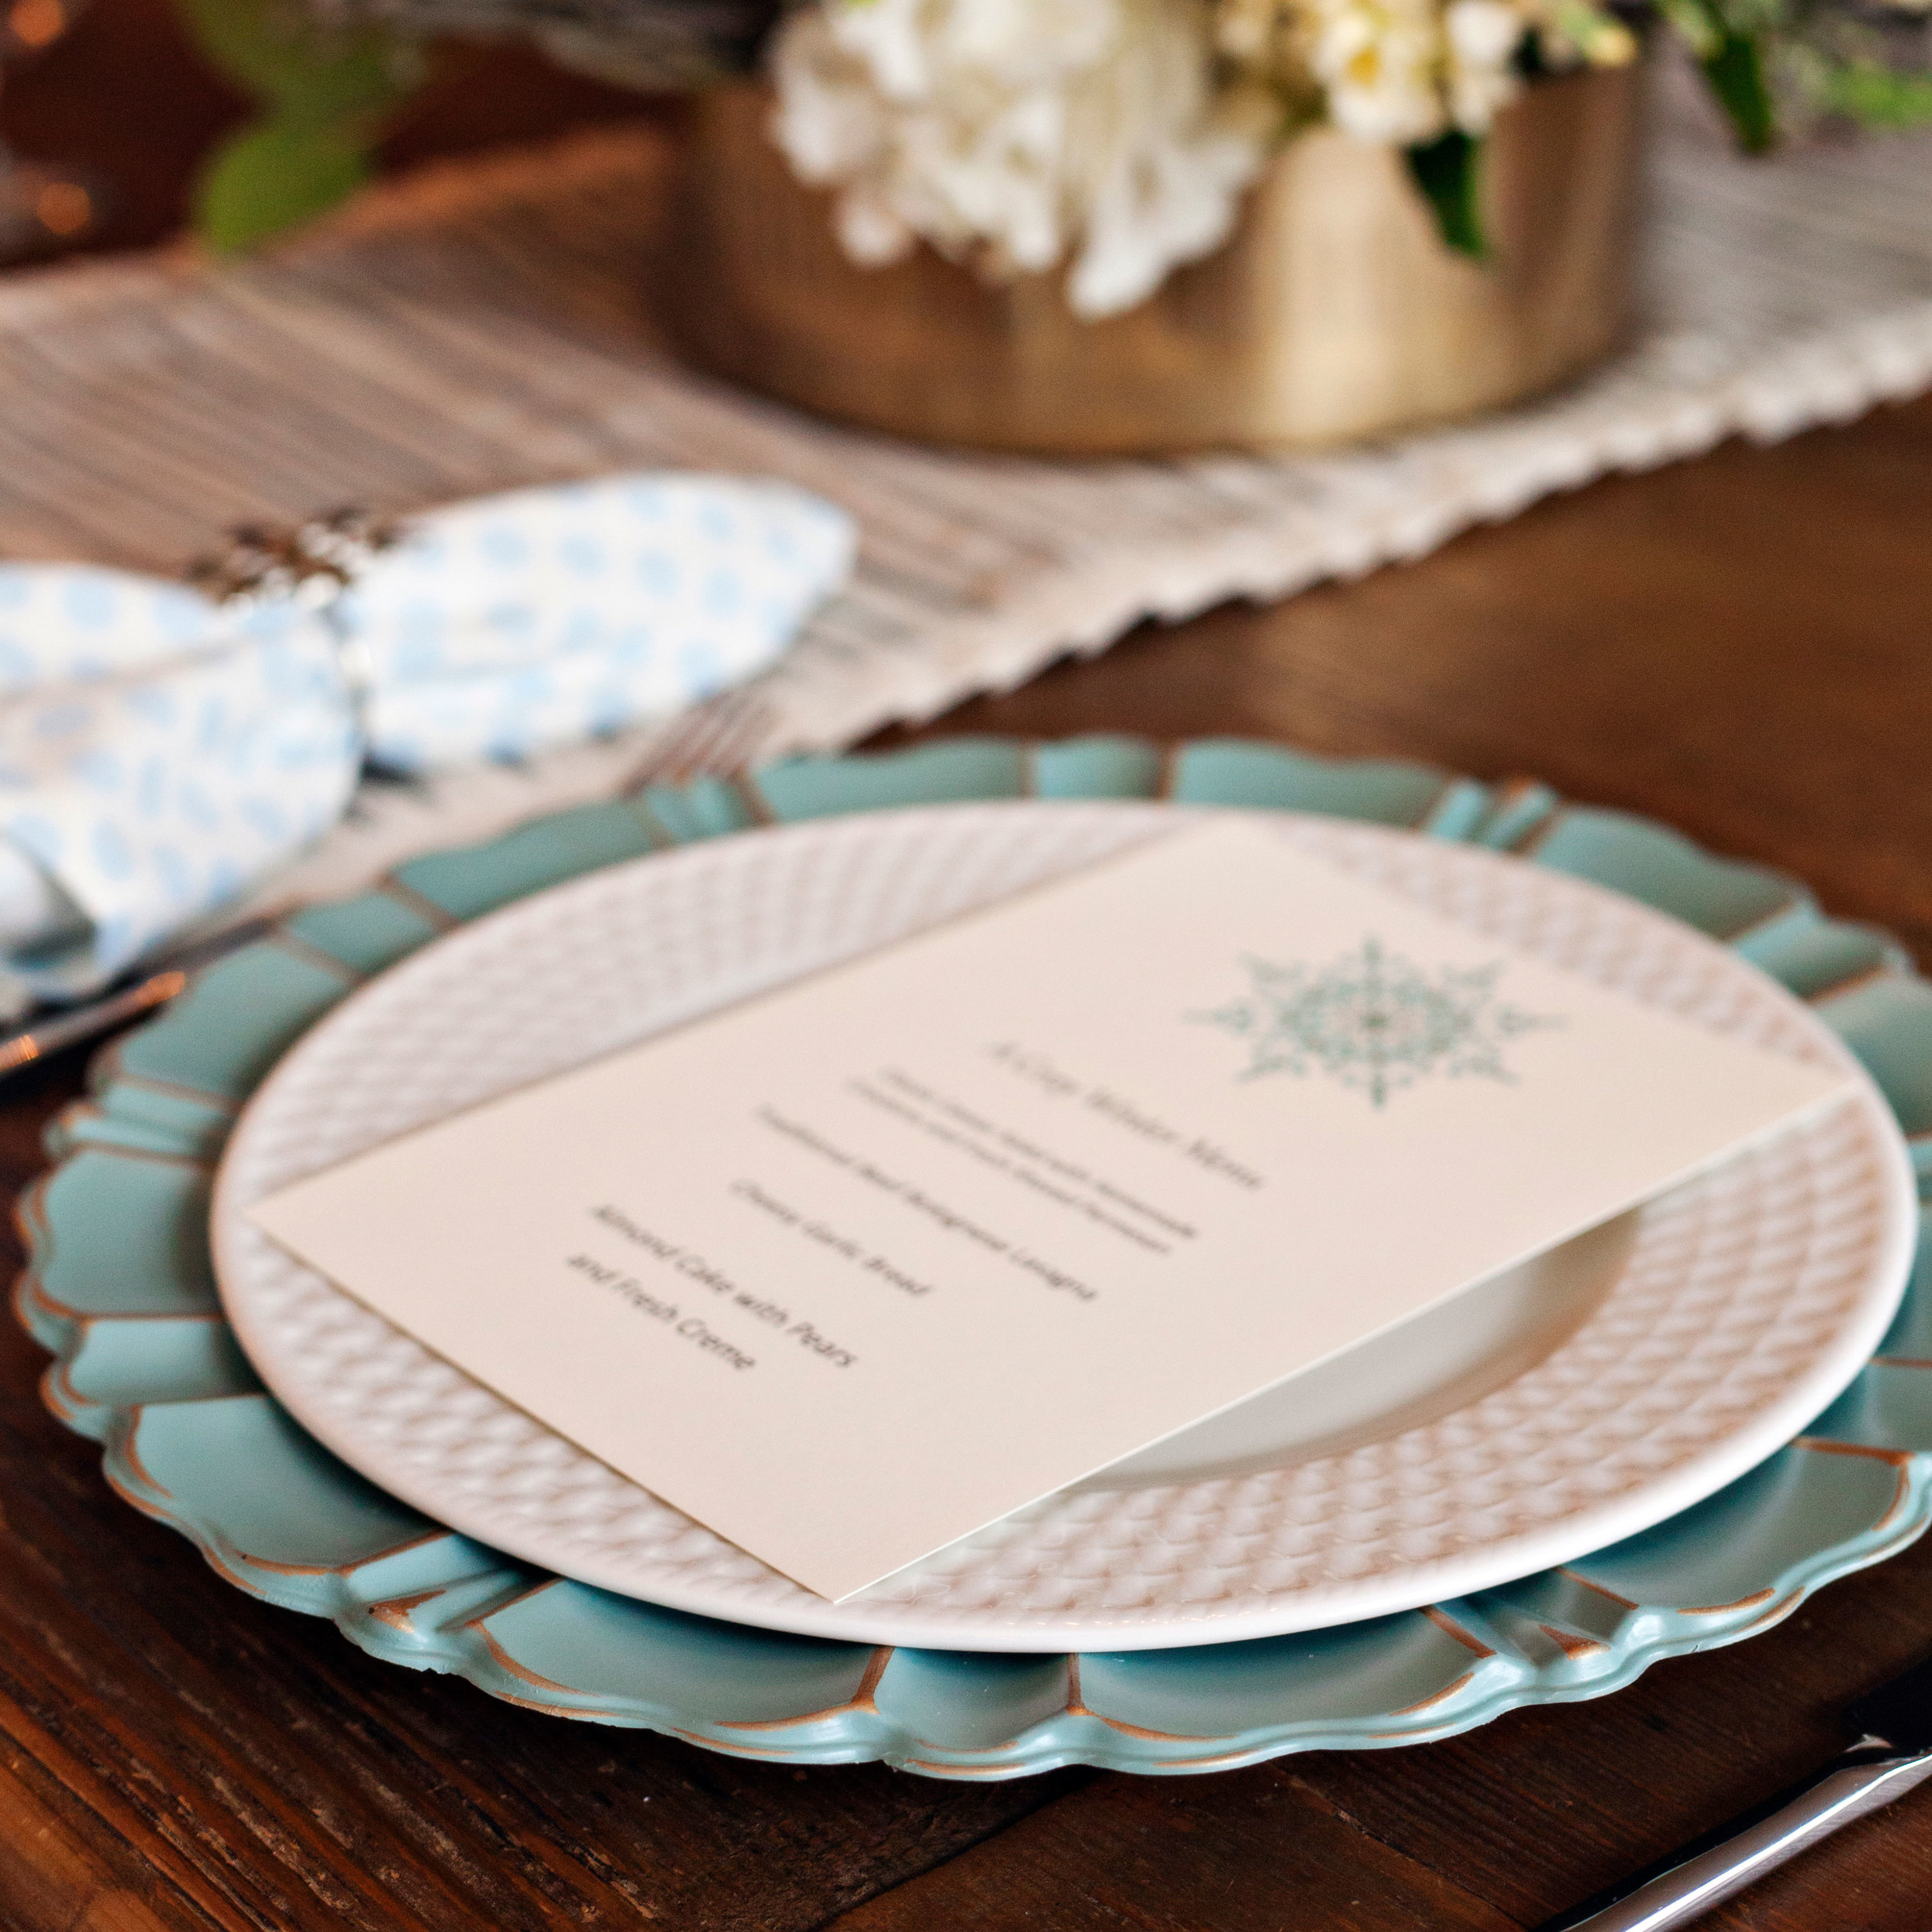 A Cozy Winter Meal - Tablescape Includes:Striped Table Runner, Blue Hued Charger, Plate, Polka Dot Napkin, Snowflake Napkin Ring, and Snowflake Printed Menu (Printed prior to delivery, if desired)$14.99 per tablescapeYour guests will be whisked away to a cozy winter meal with this inviting table setting! Snowflakes and polka dots add whimsical charm to your table, with an added treat for your guests to anticipate your planned menu as they sit down to dine.